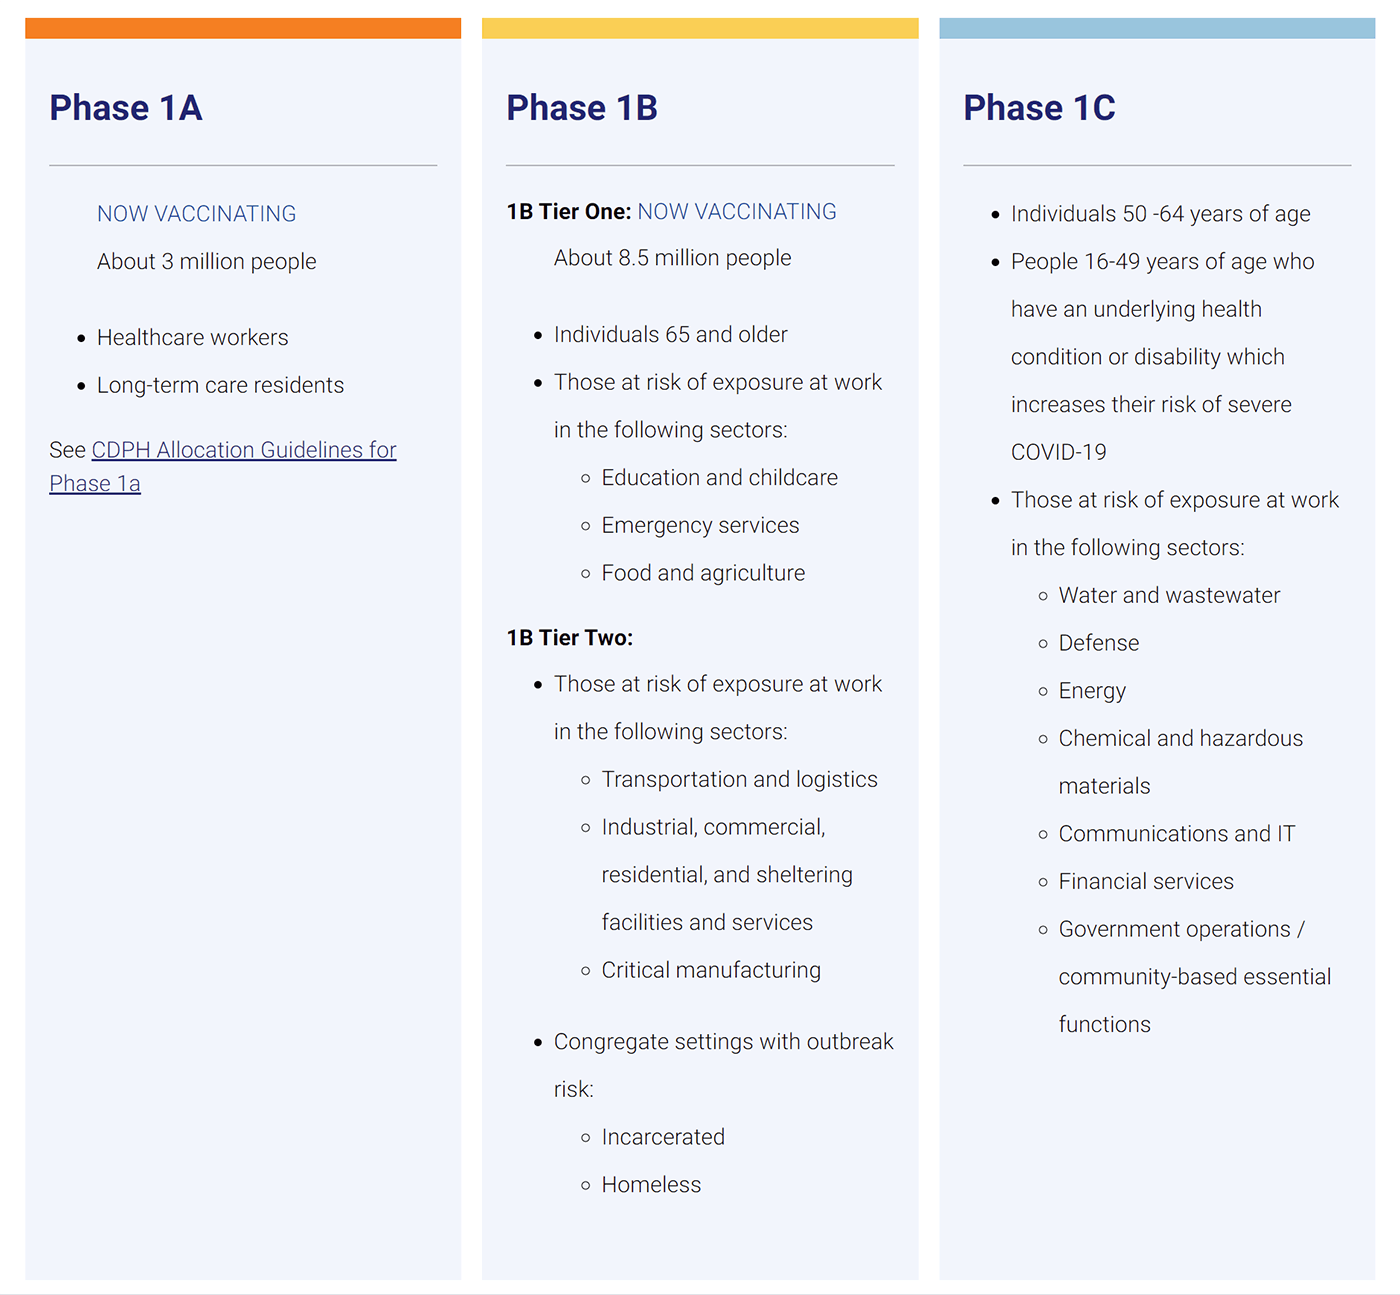 Charts showing COVID-19 vaccine phases for California